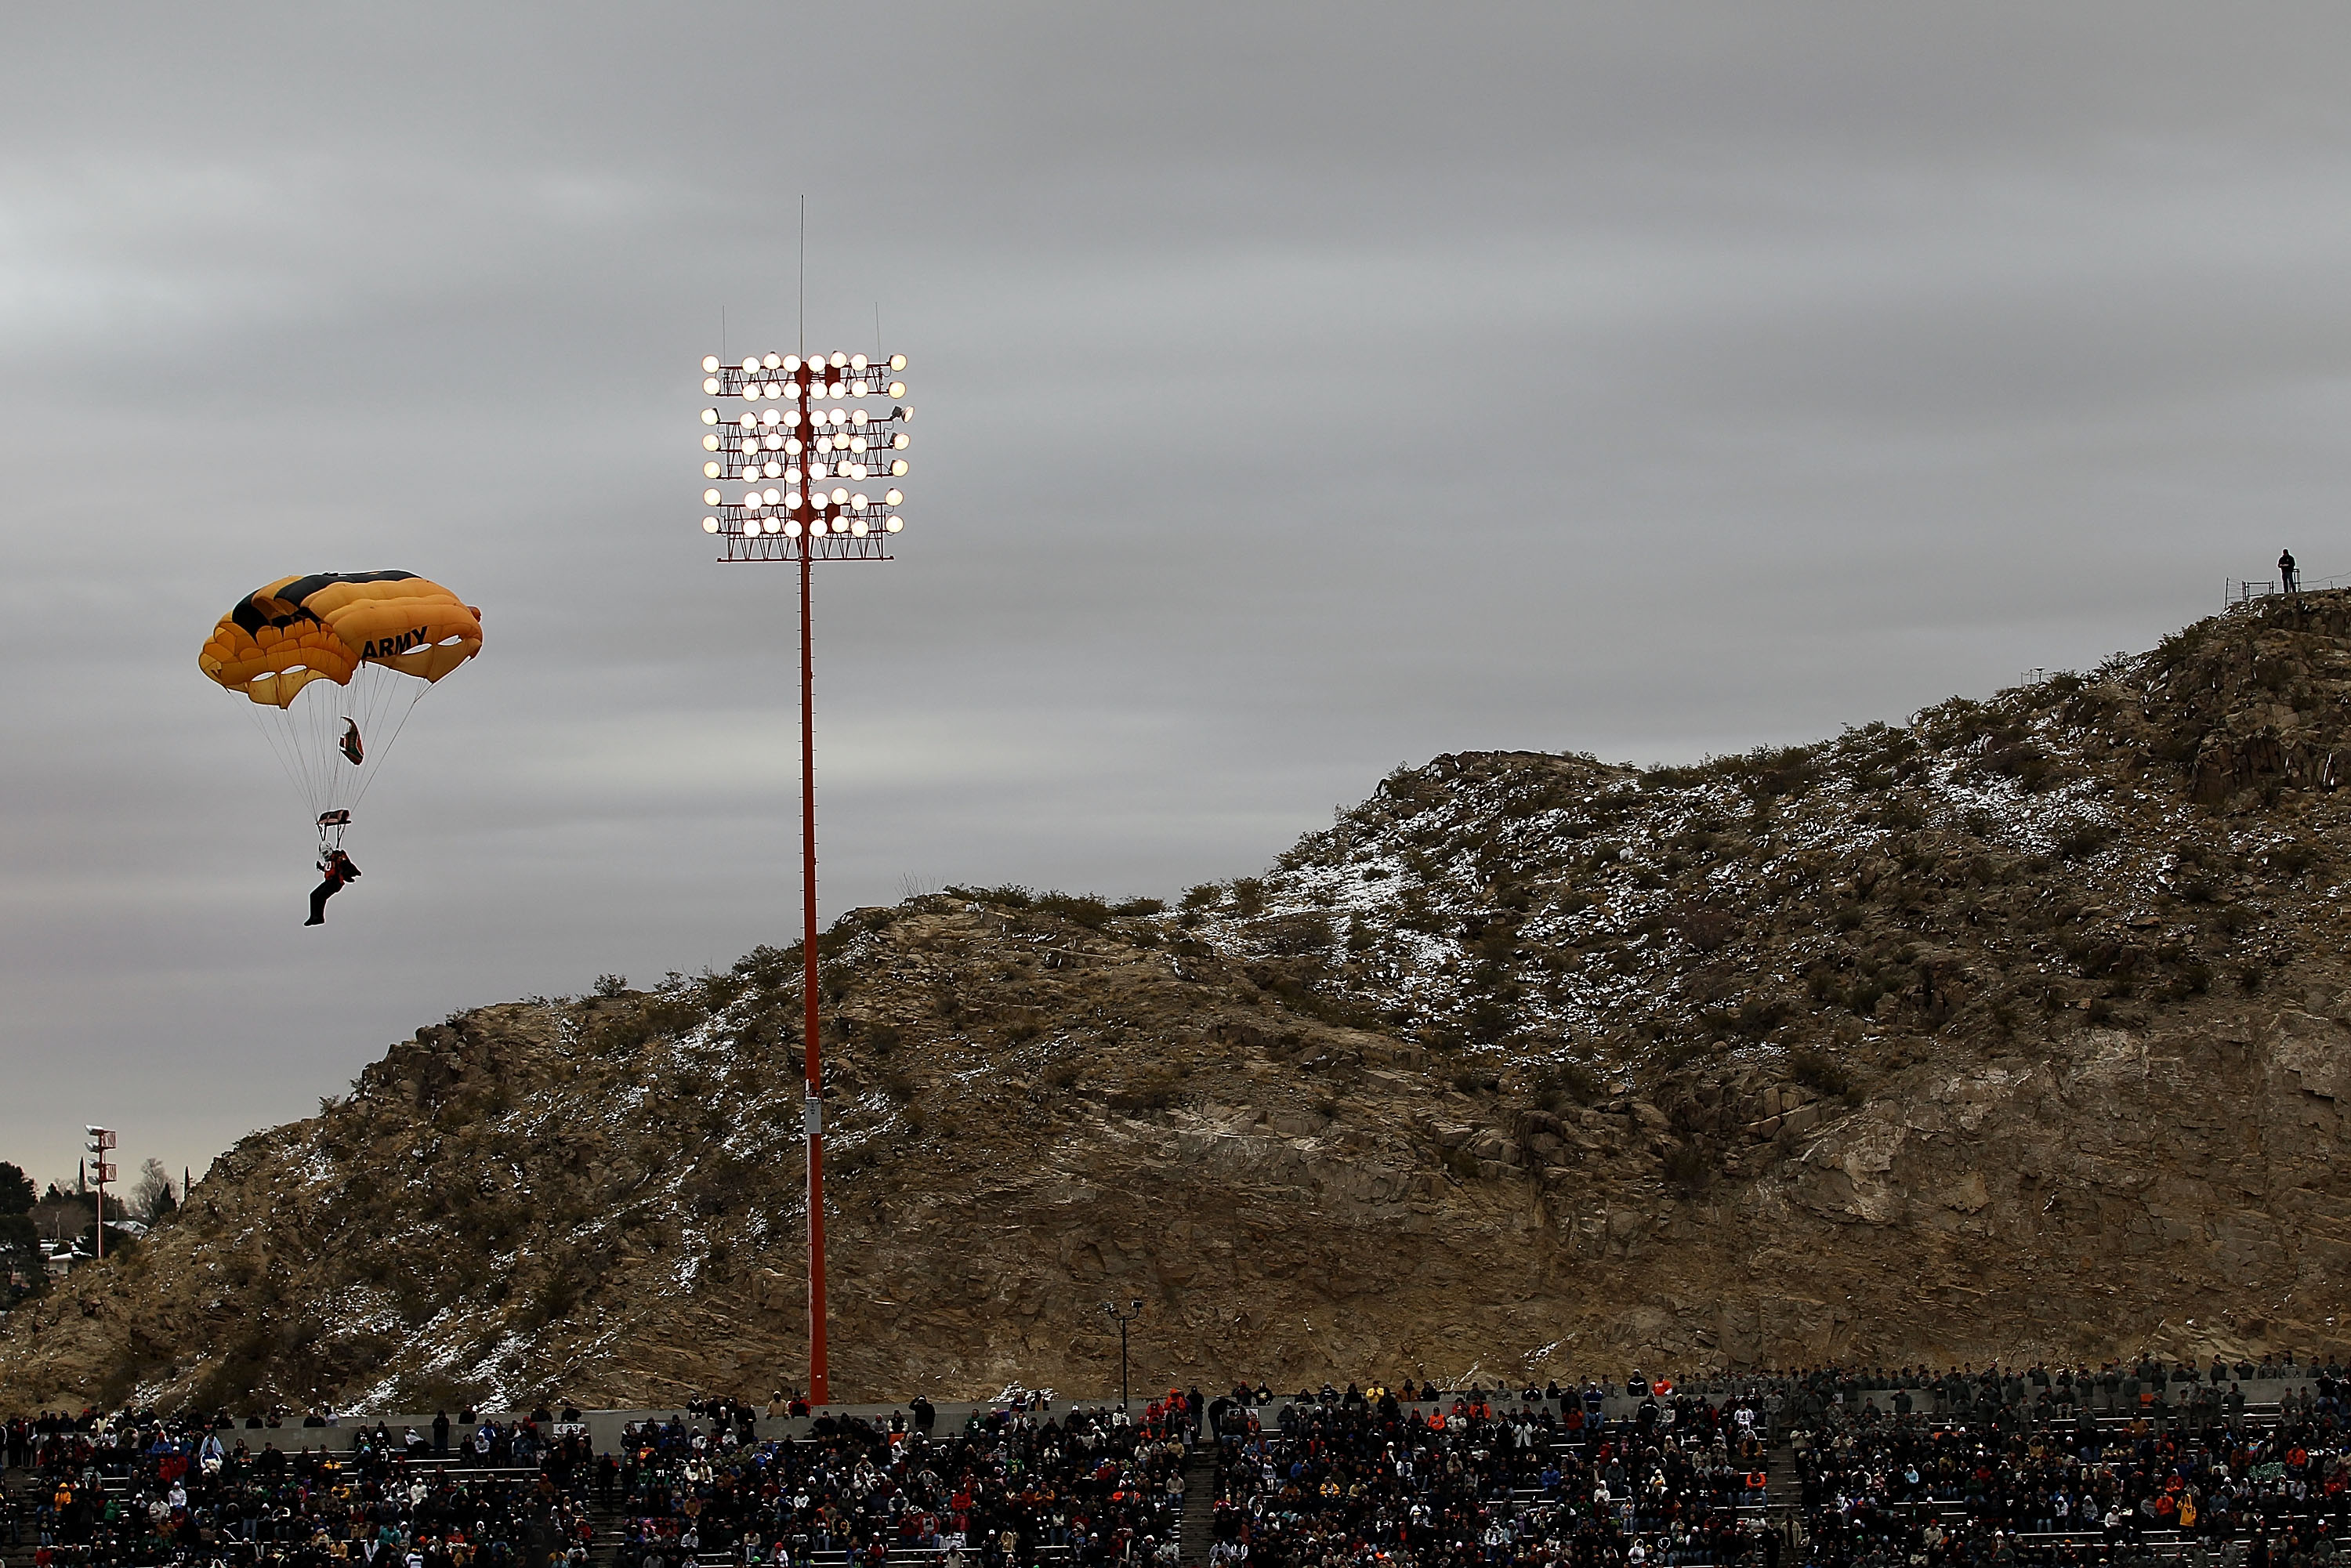 THE SUN BOWL IS BEST ENJOYED WHILST FALLING FROM THE SKY